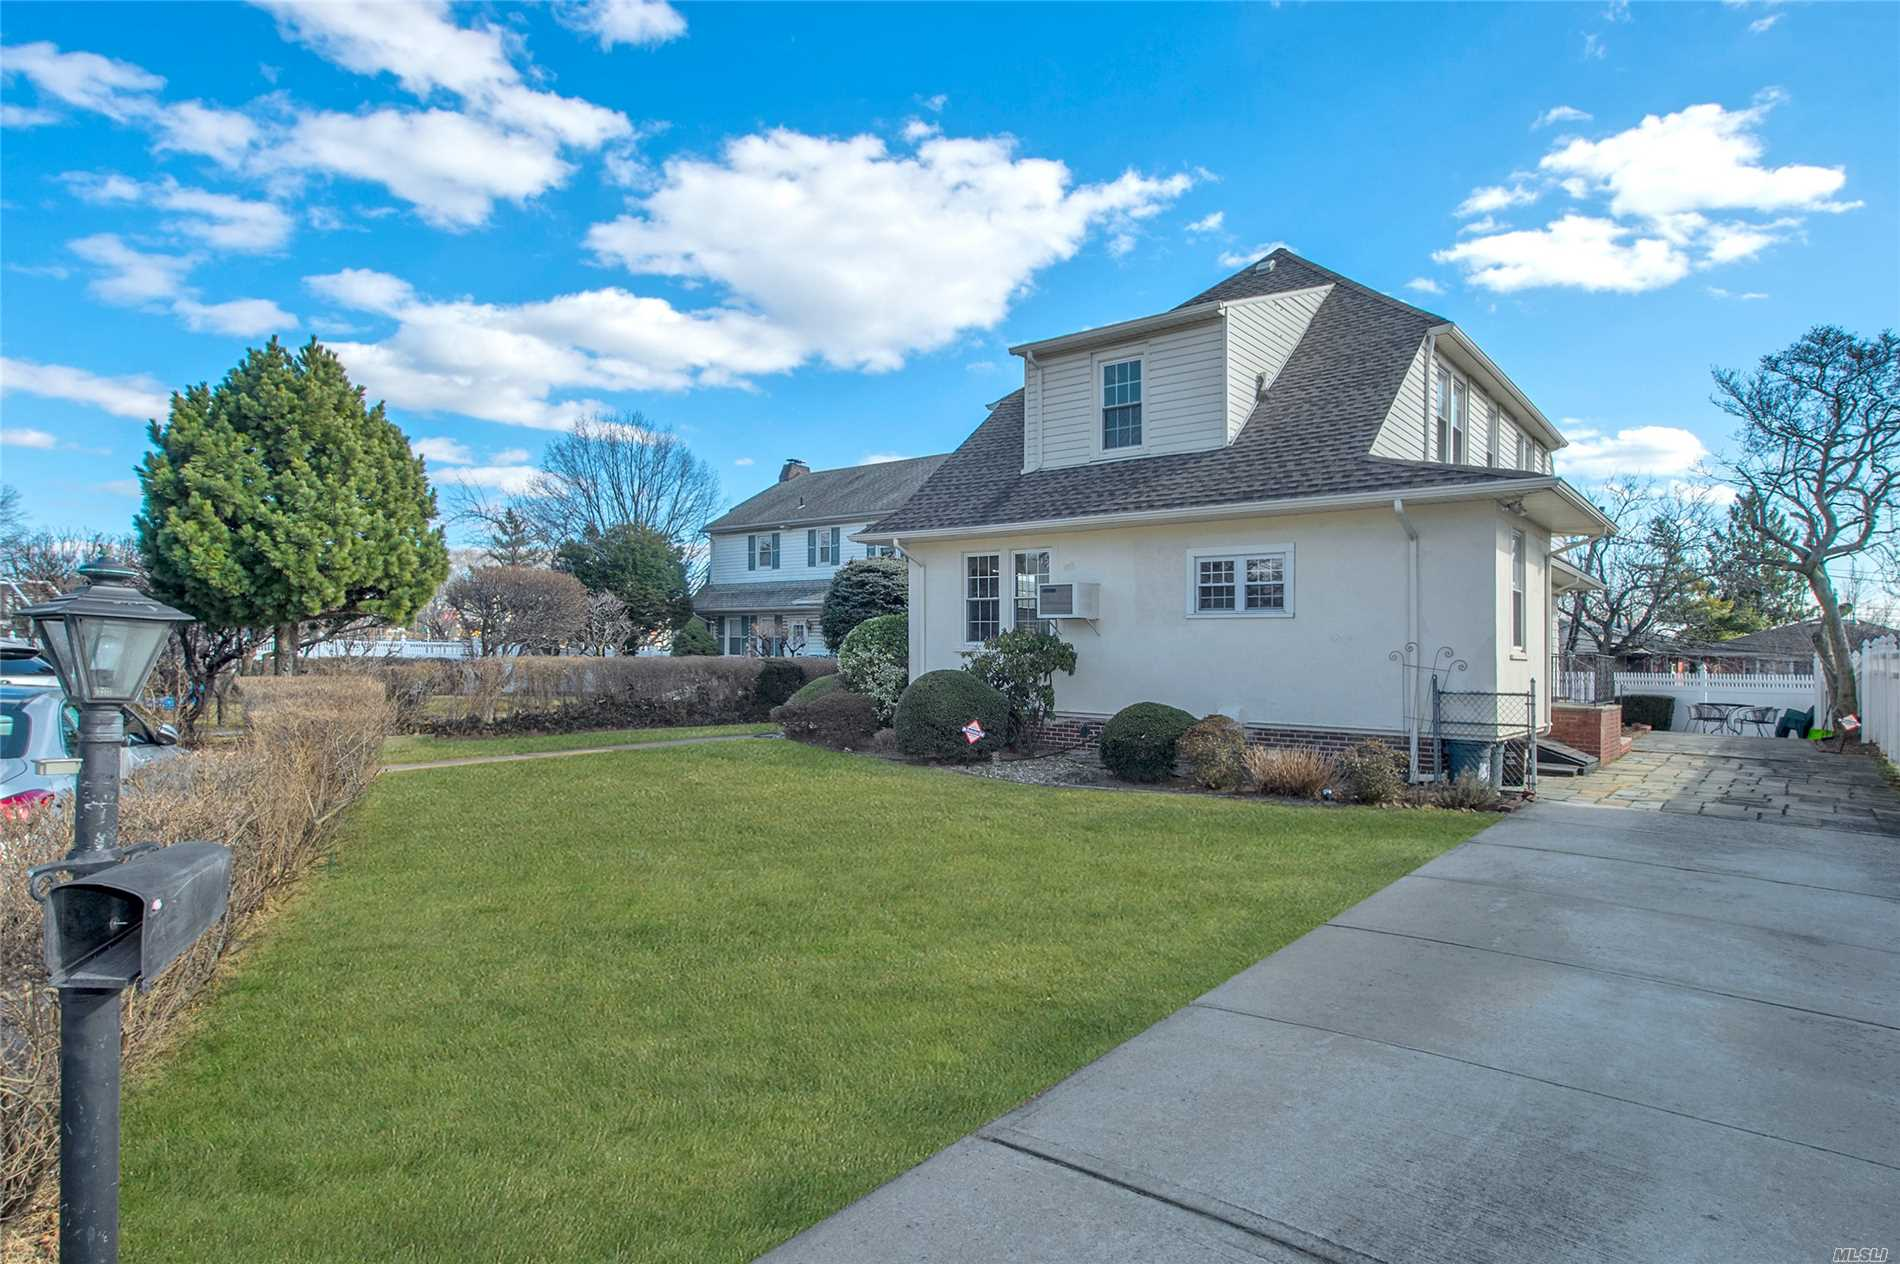 A Bright & Sunny Center Hall Colonial House ( 7685 Sqft Size Lot) In Beautiful Malba. It Features A Spacious Living Room W/Fire Place, Dinning Room, Open Kitchen With Cherry Cabinets W/Granite Counter Tops, Office/ Den And Bath In 1st Fl. 3 Bedrooms & 2 Full Baths On 2 Fl. Faces To East & South. Renovated The Roof, Floors, Kitchen, Baths & Fence 5 Years Ago. New Hot Water Tank. Hardwood Floor Throughout. Driveway Parking Available For 3 Vehicles. Close To Highway & Shopping Center.